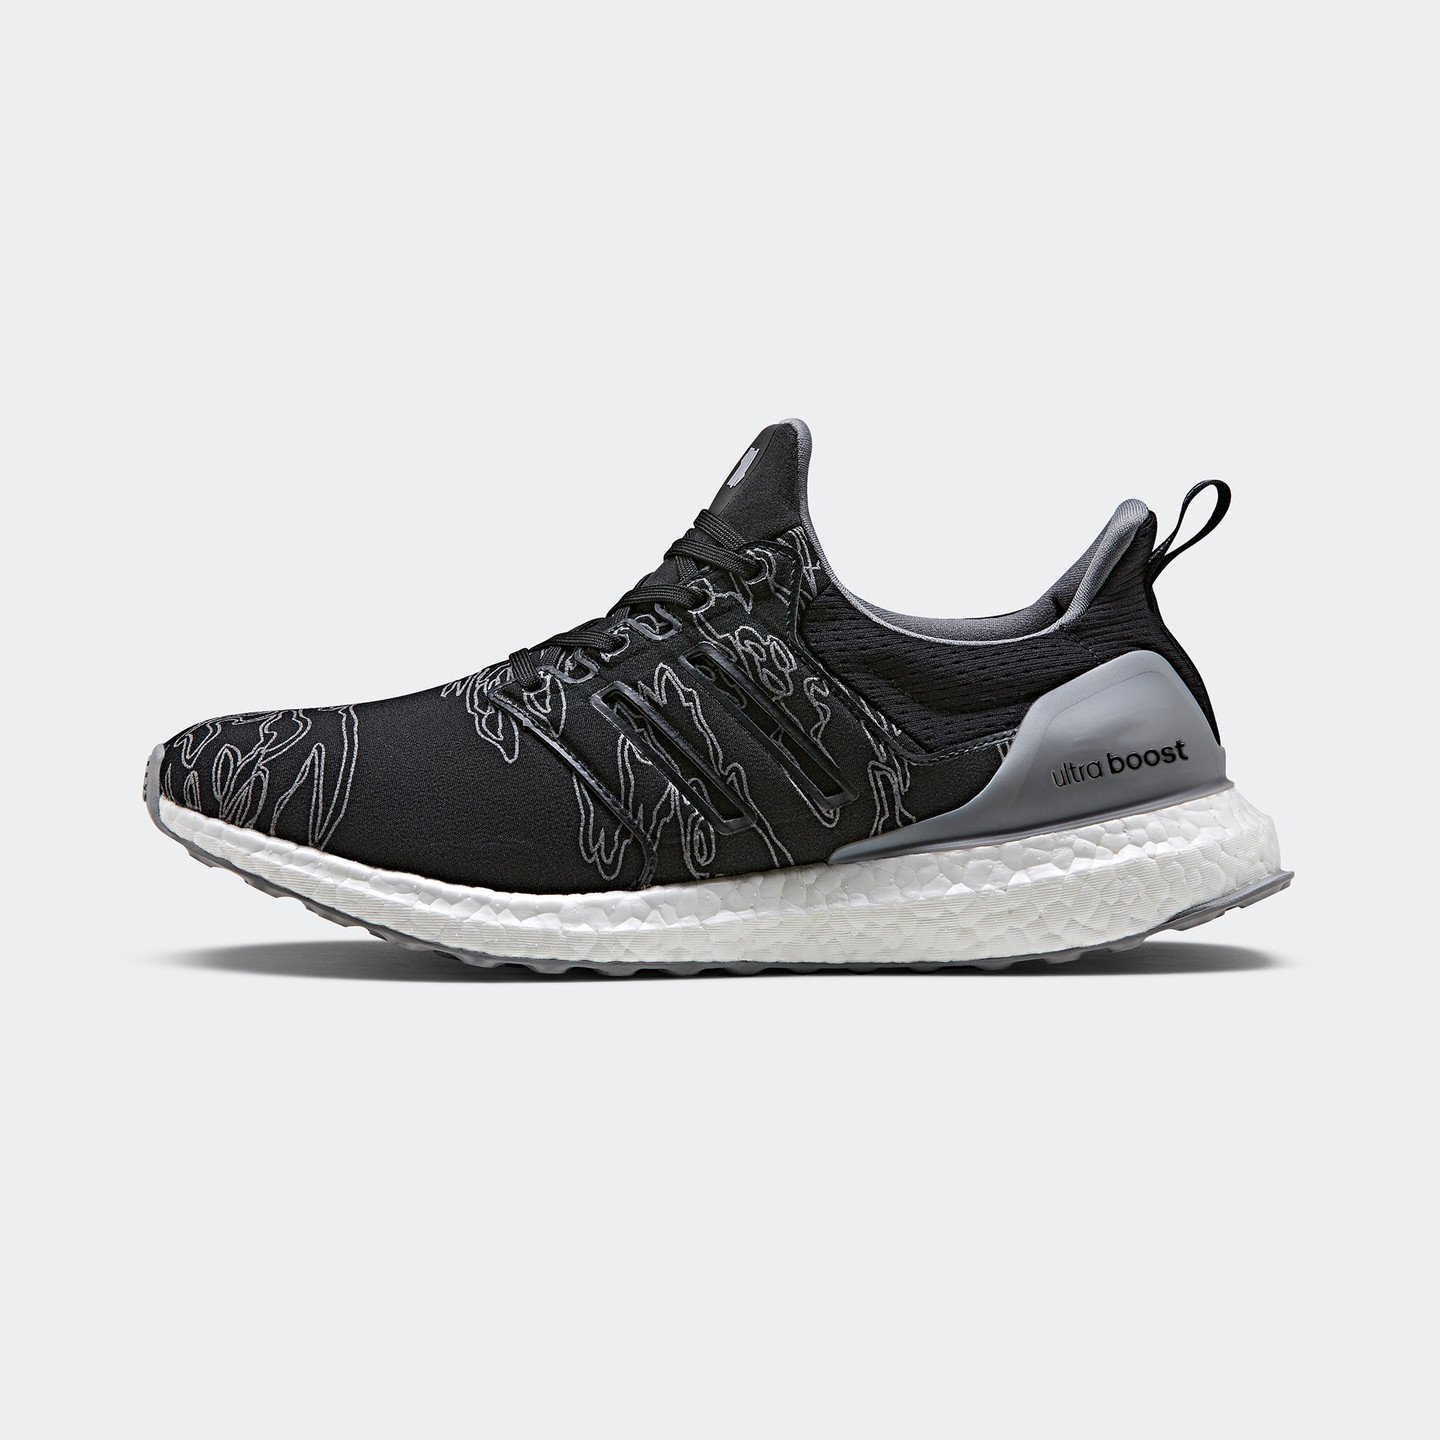 Adidas Ultra Boost 'UNDFTD' Core Black / Cool Grey BC0472